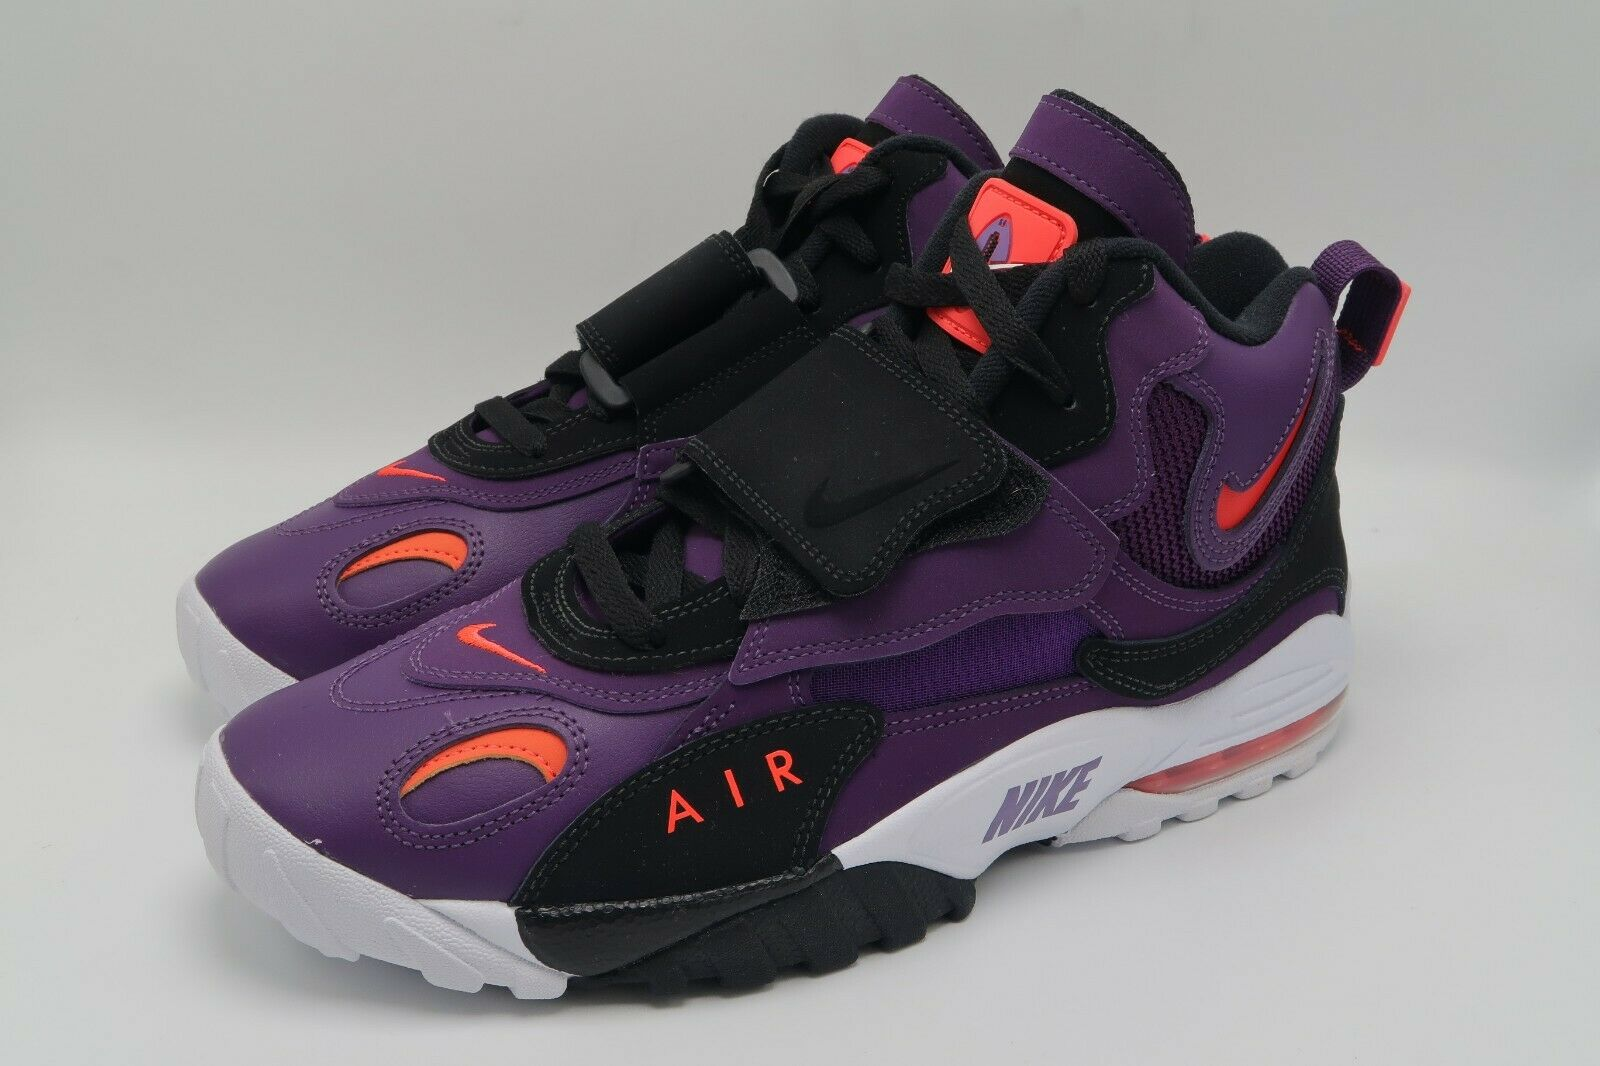 Nike Air Max Speed Turf Night Purple US 10.5 52522- 500 New